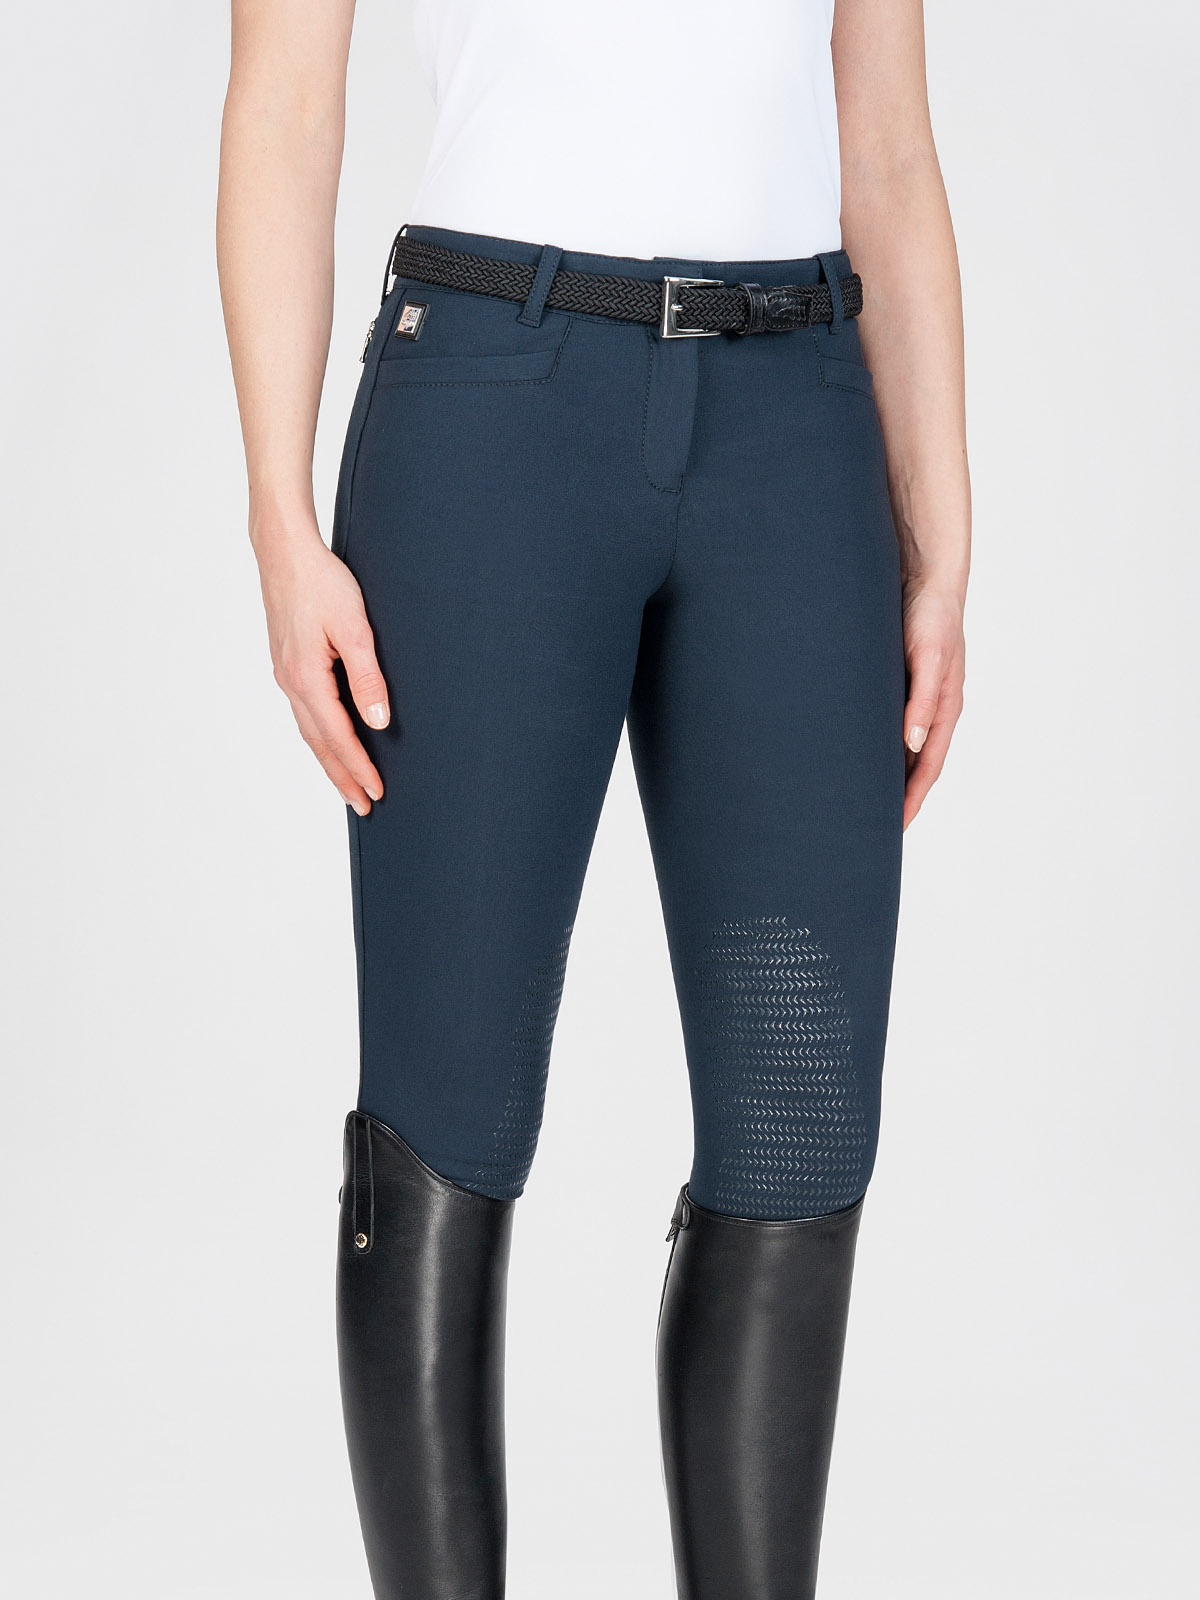 ASH Women's Riding Breeches with X-Grip Knee Patch in navy blue